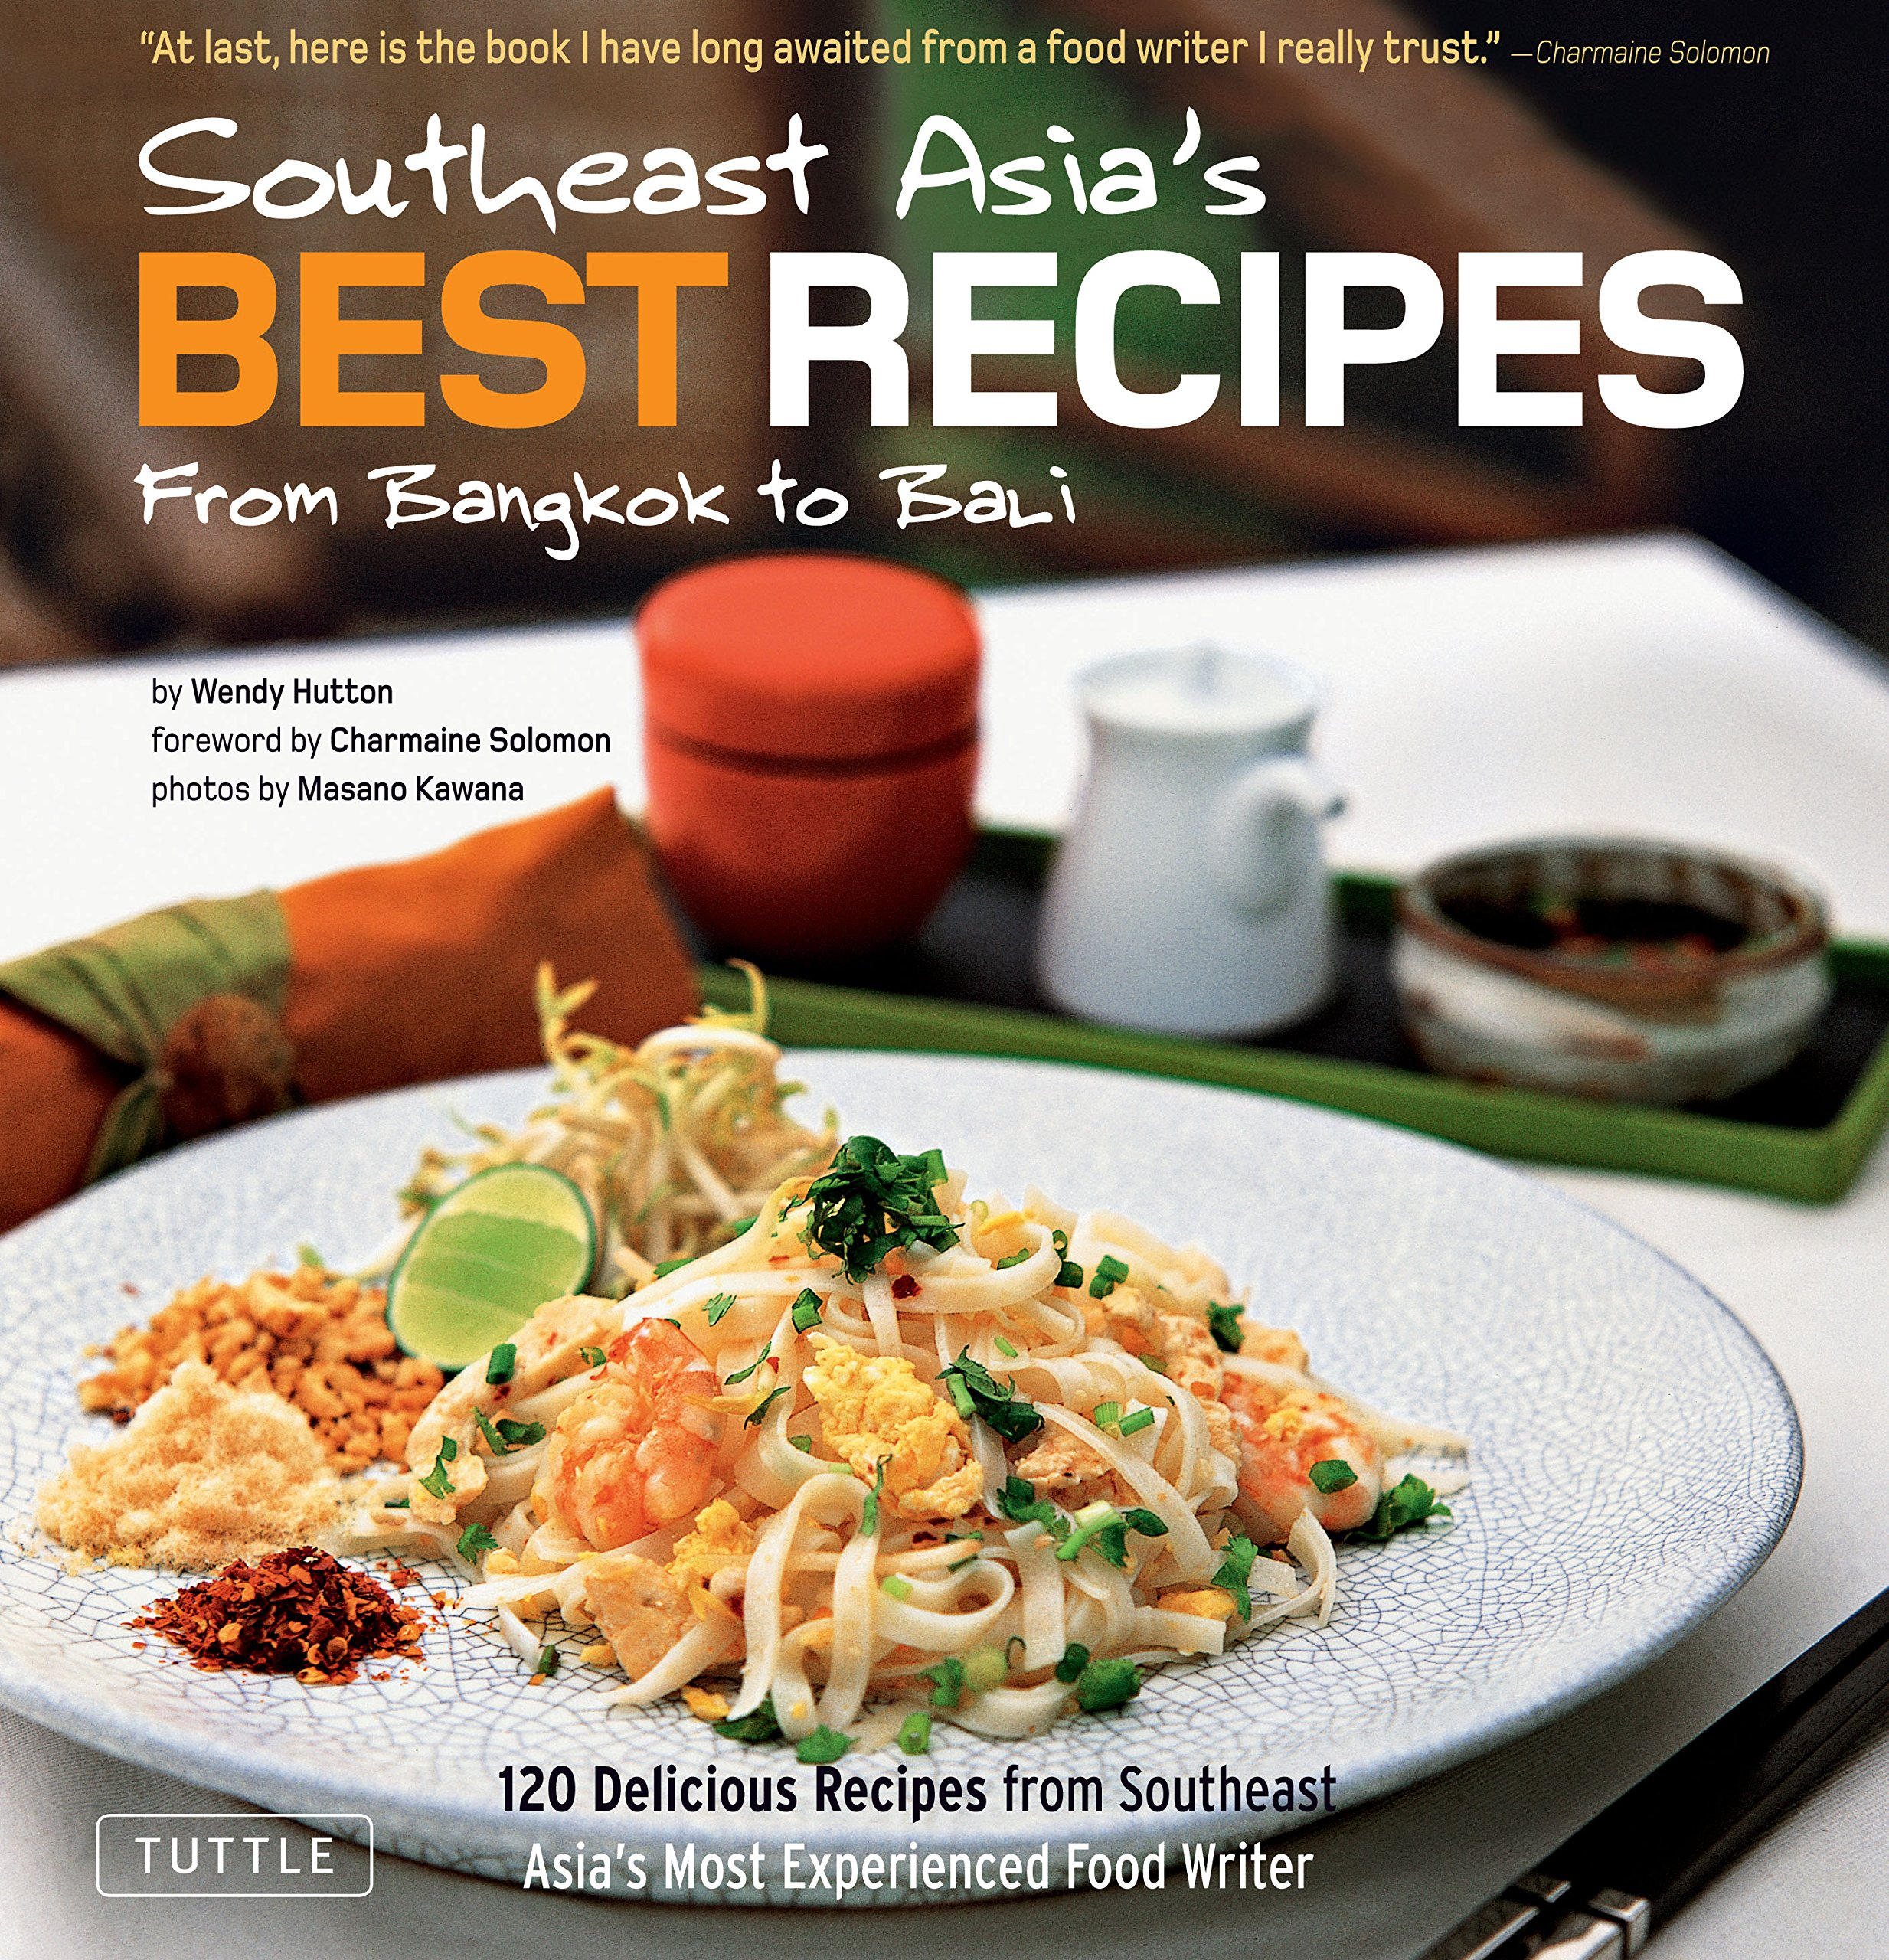 Southeast asias best recipes from bangkok to bali southeast southeast asias best recipes from bangkok to bali southeast asian cookbook 121 recipes wendy hutton masano kawana charmaine solomon 9780804844130 forumfinder Gallery